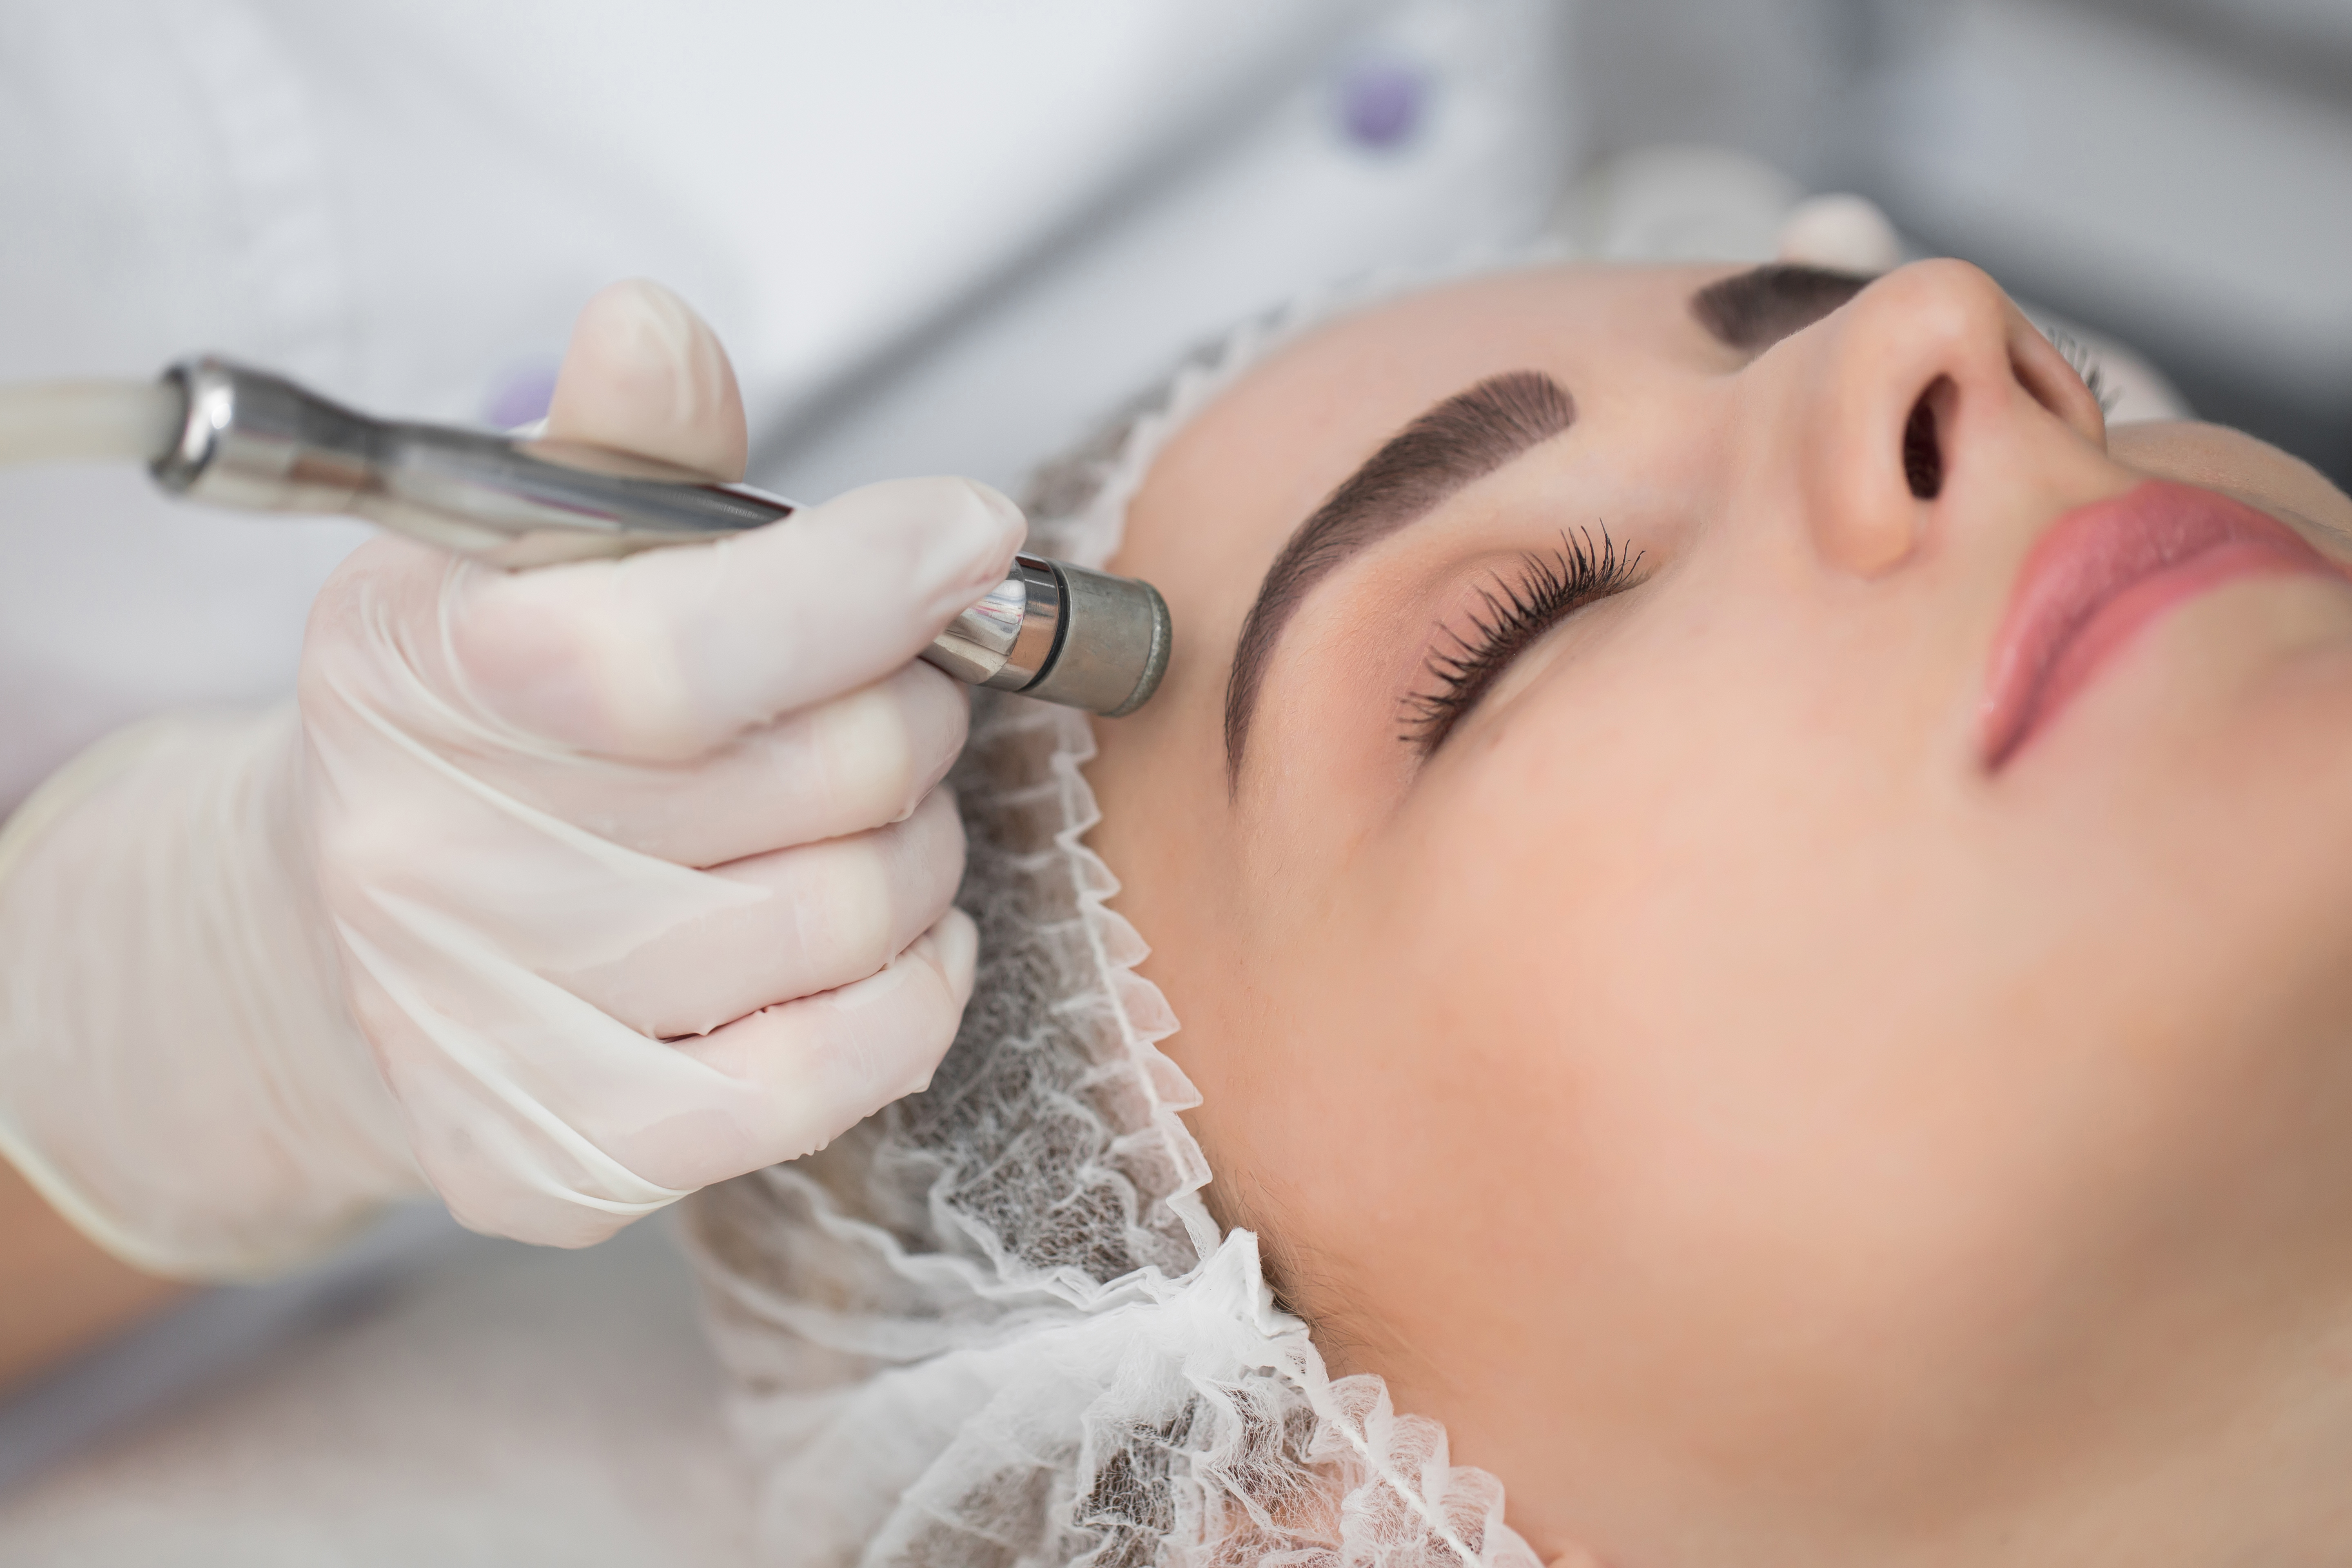 Woman getting a microdermabrasion done